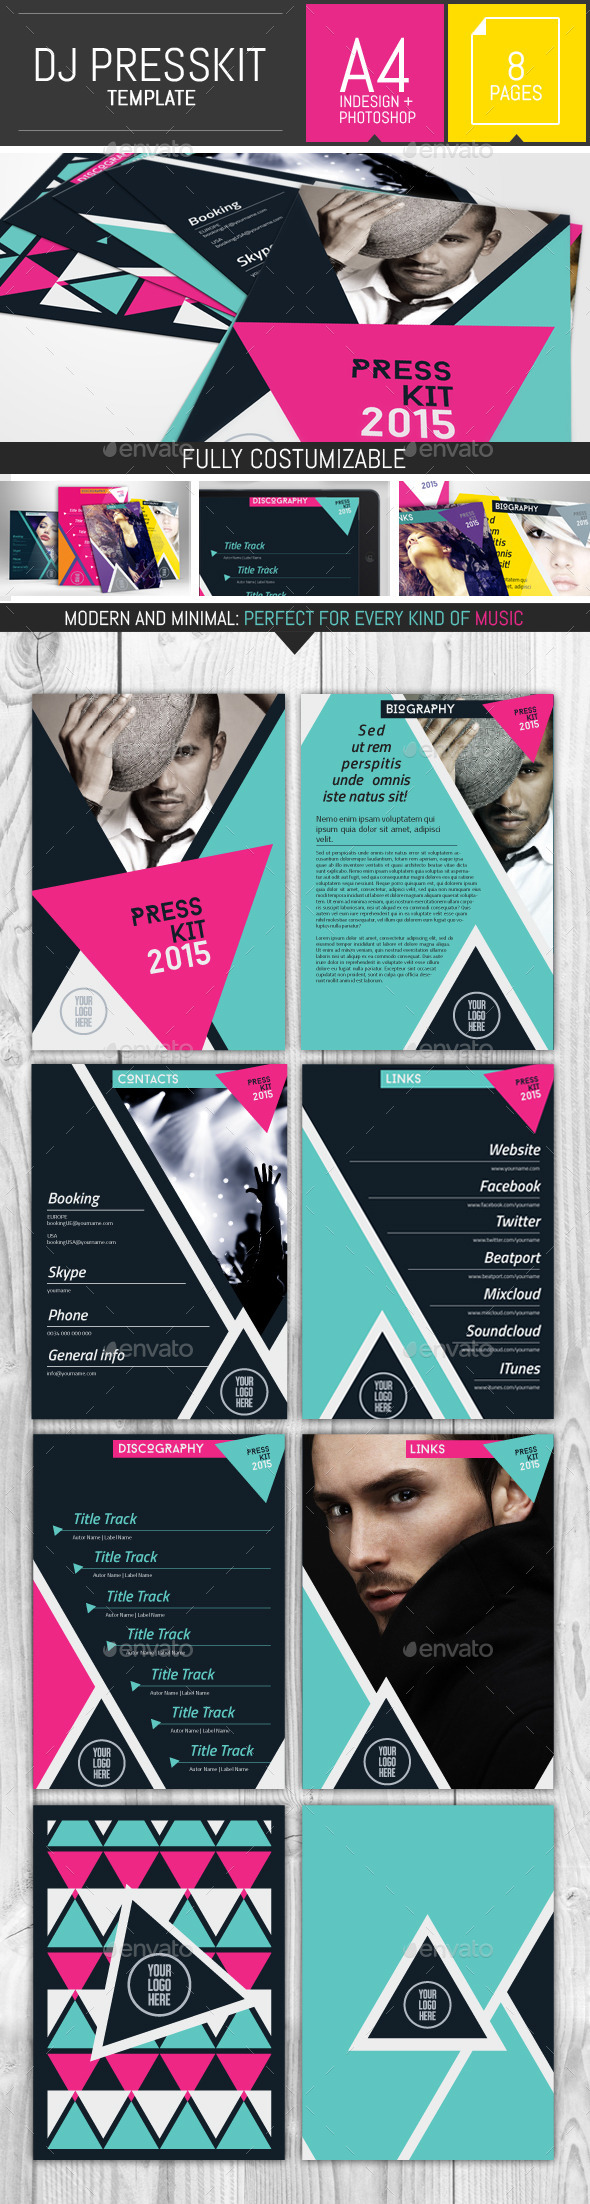 Geometric Dj and Musician Presskit Template - Resumes Stationery